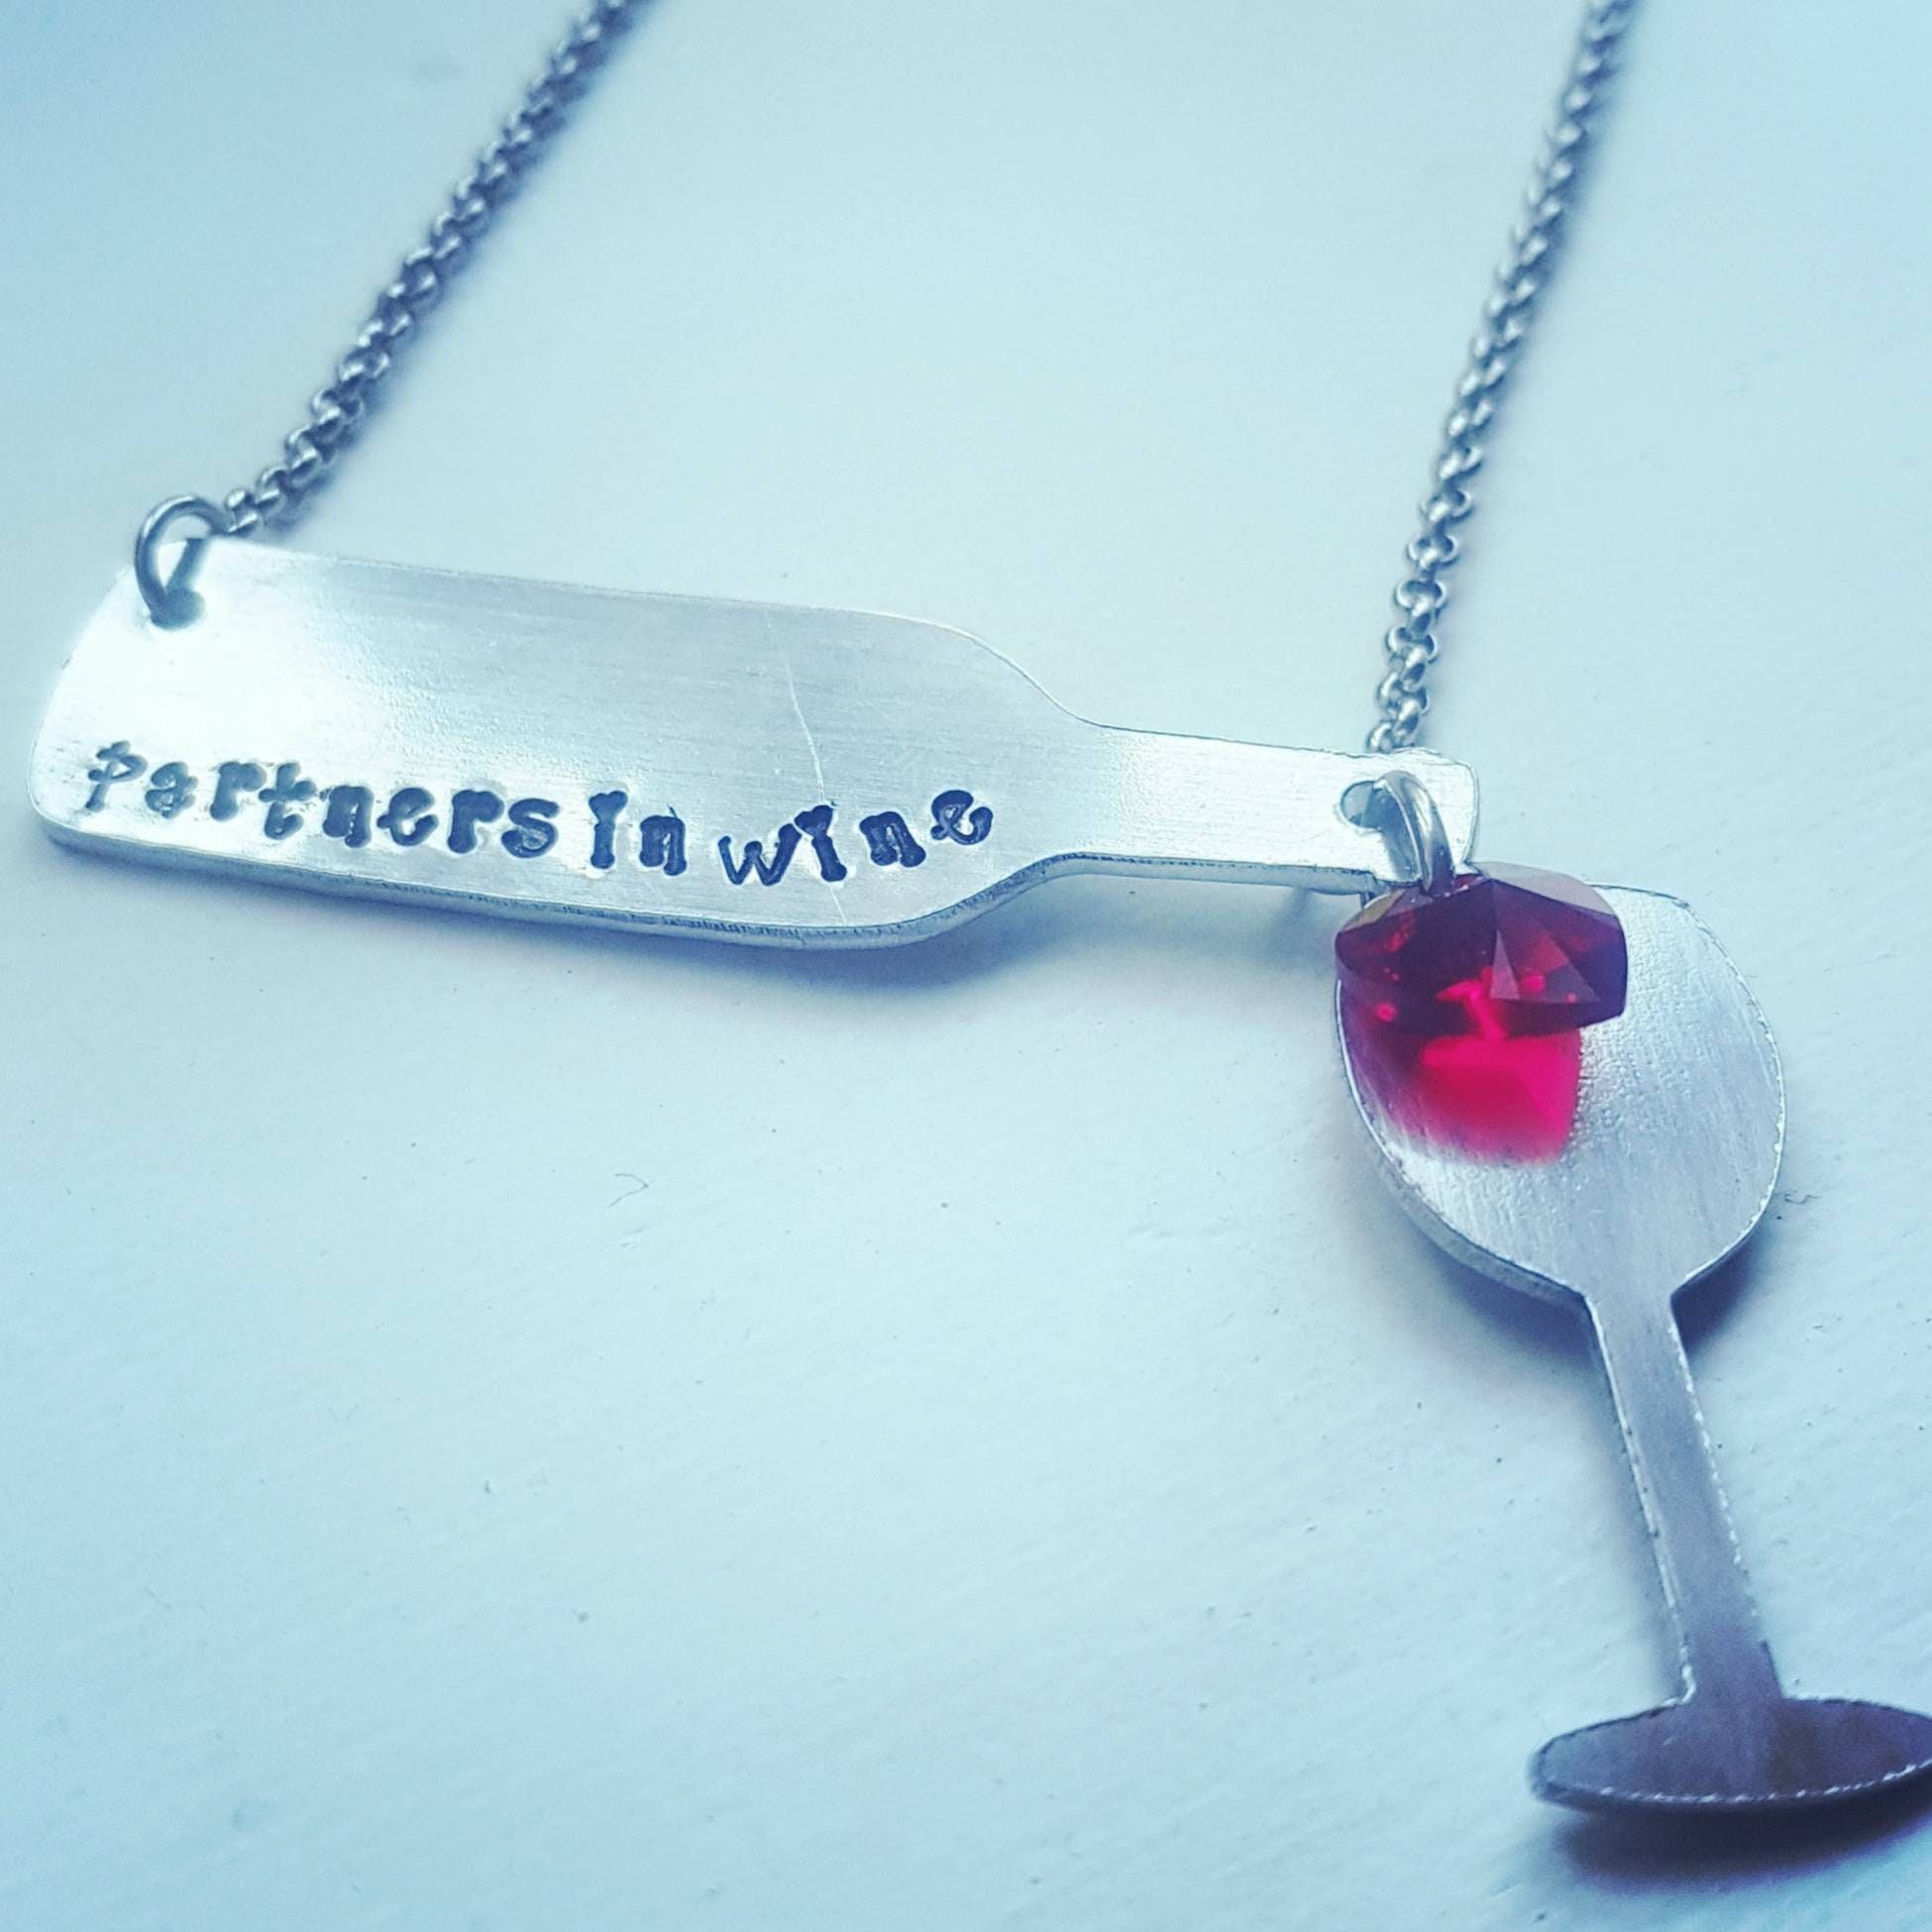 8d958138e13ff Partners in wine pendant, wine lovers necklace,